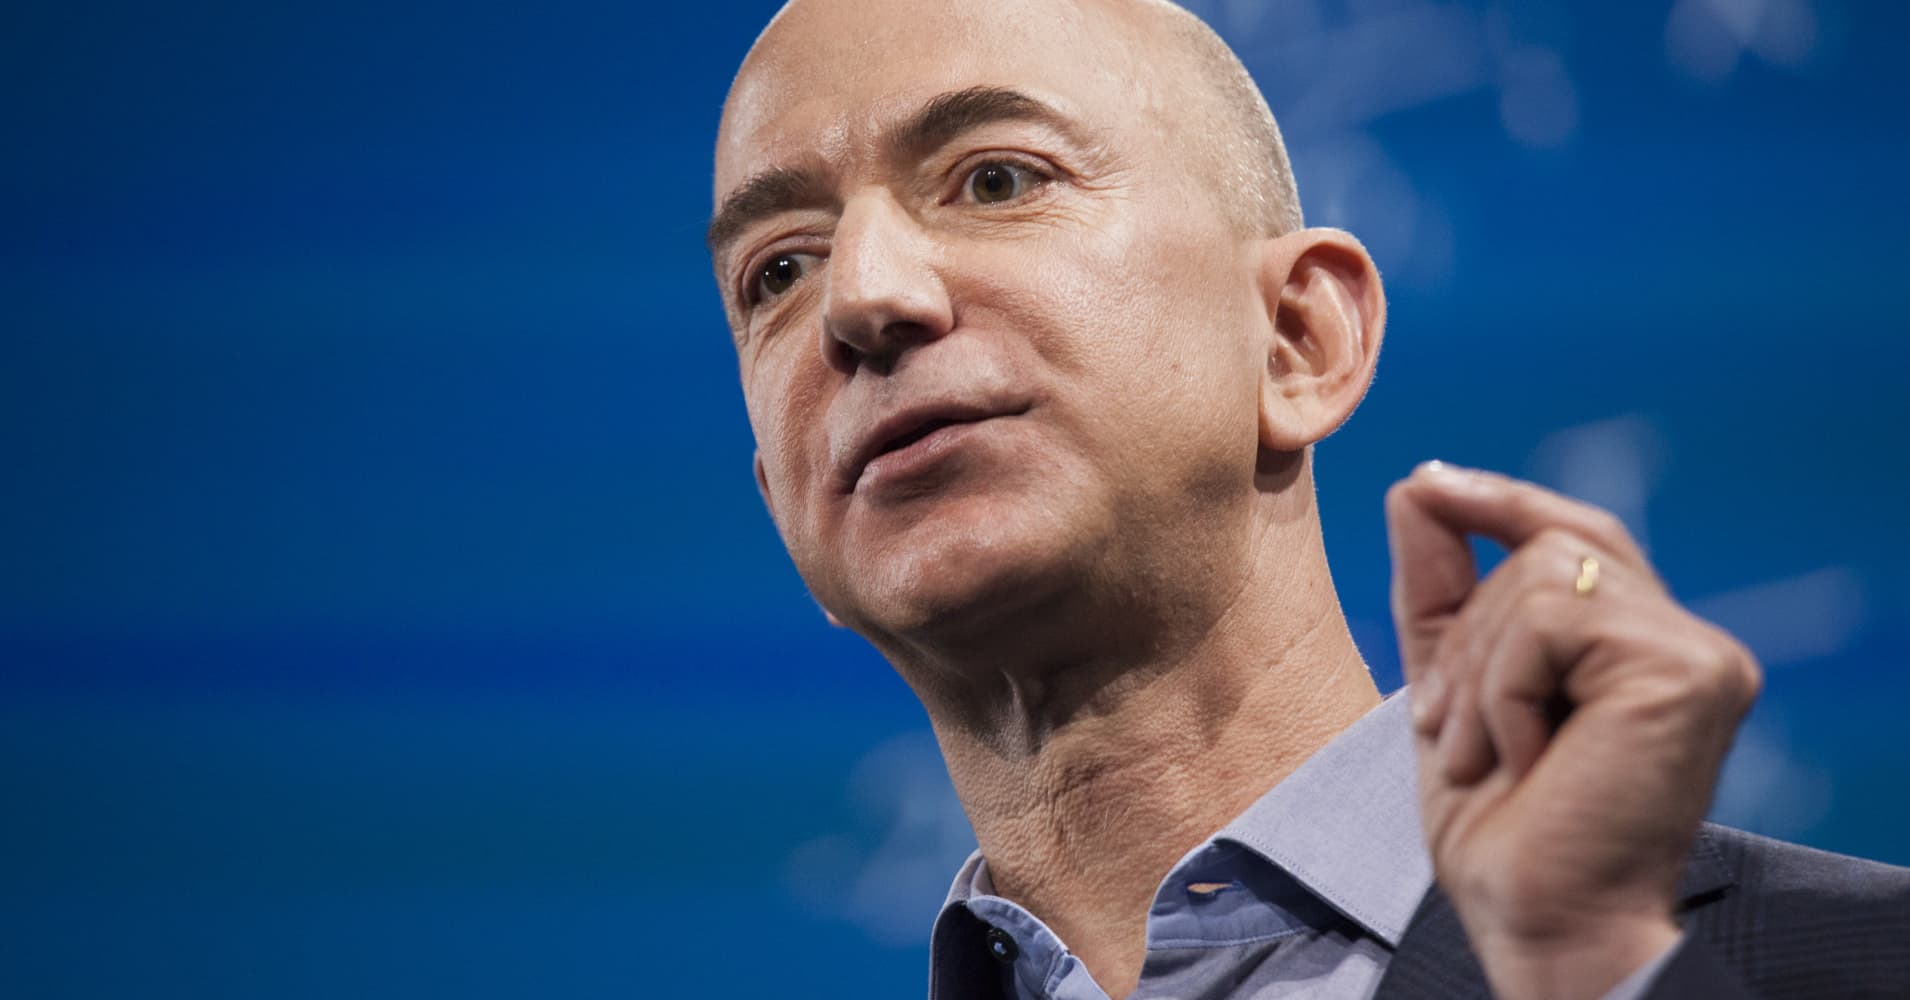 Amazon.com founder and CEO Jeff Bezos